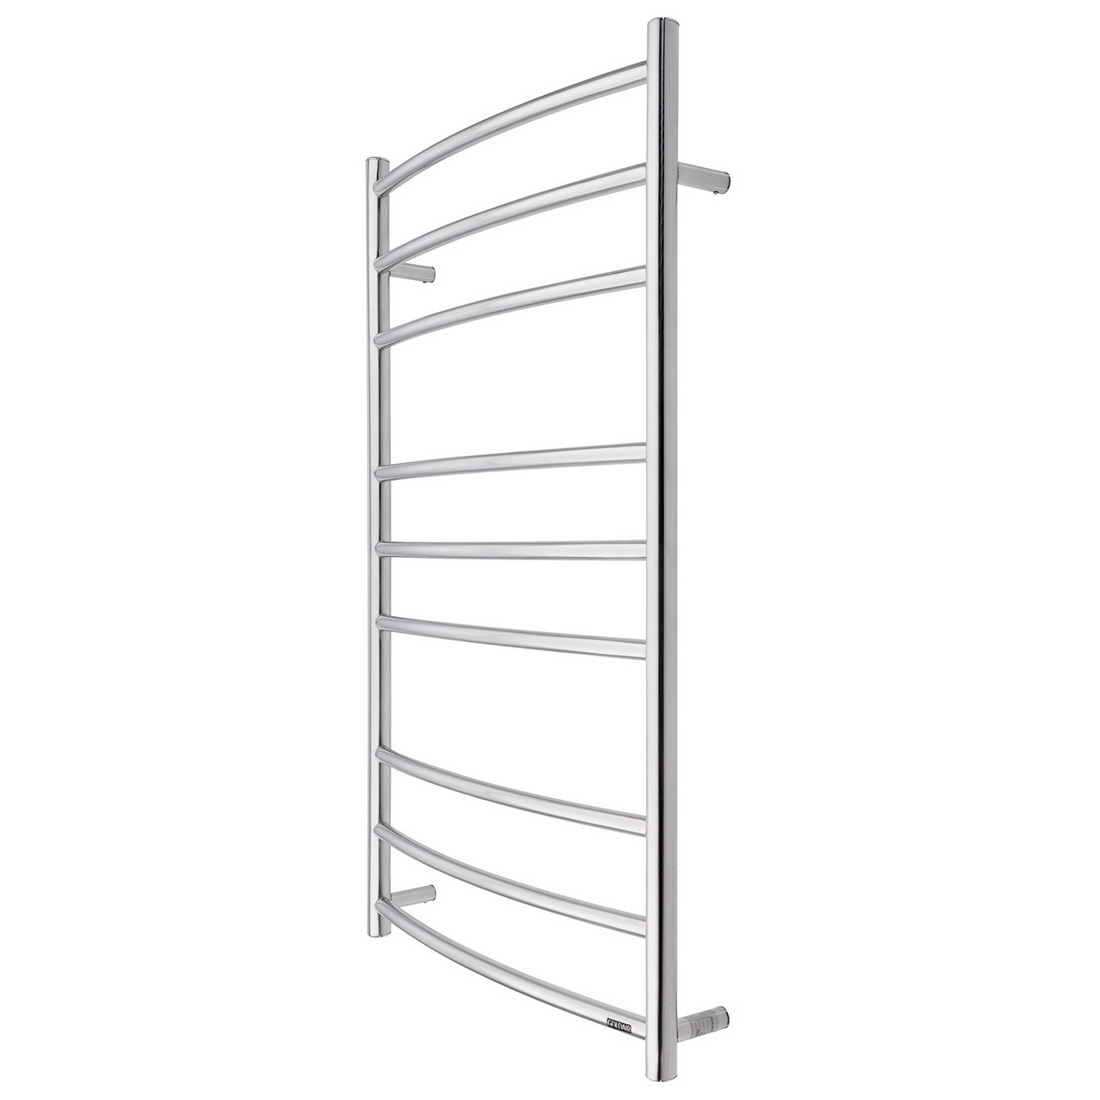 Goldair Dual Round Heated Towel Rail Ladder 1030 x 630 mm Scratch-Resistant 9 Bars GLTR9C